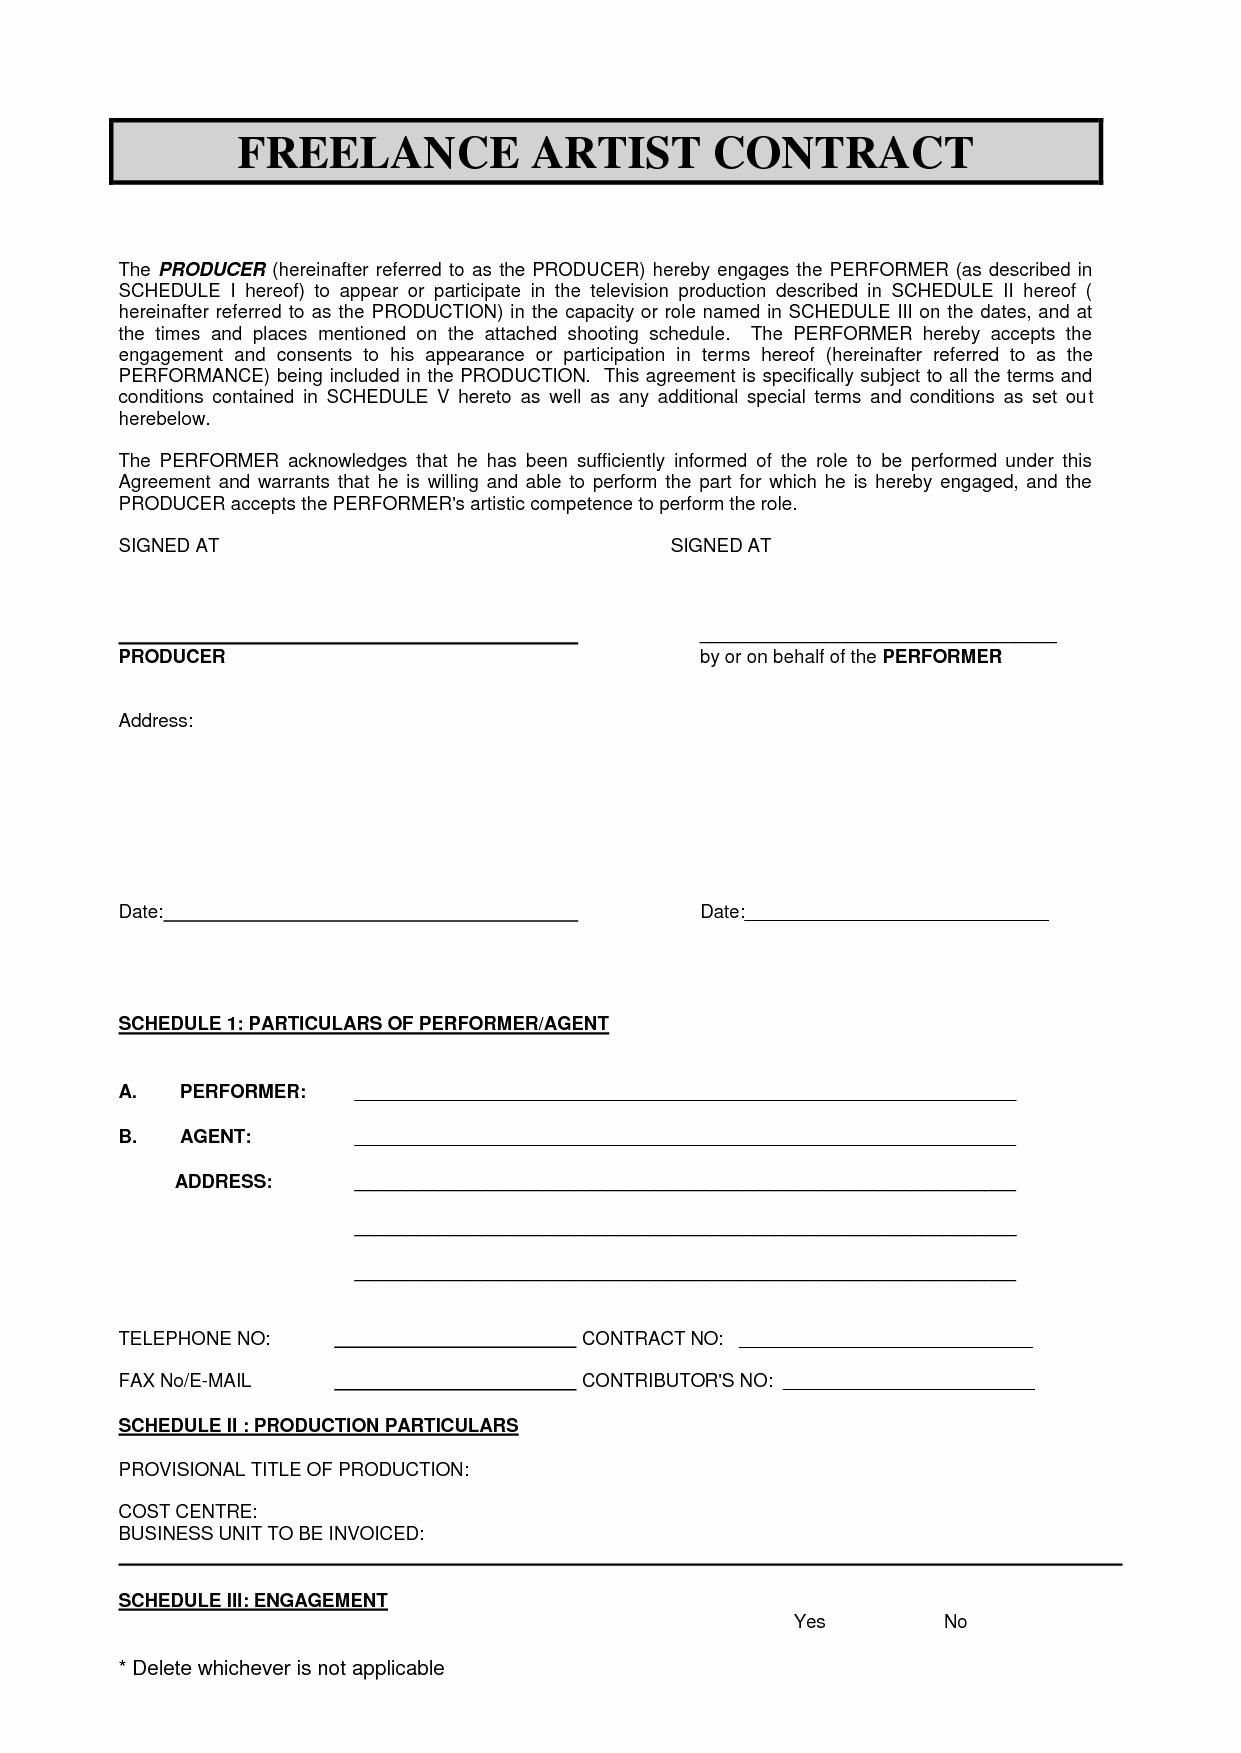 Freelance Makeup Artist Contract Template New Sabc Contract 2010 Pdf Freelance Artist Contract by